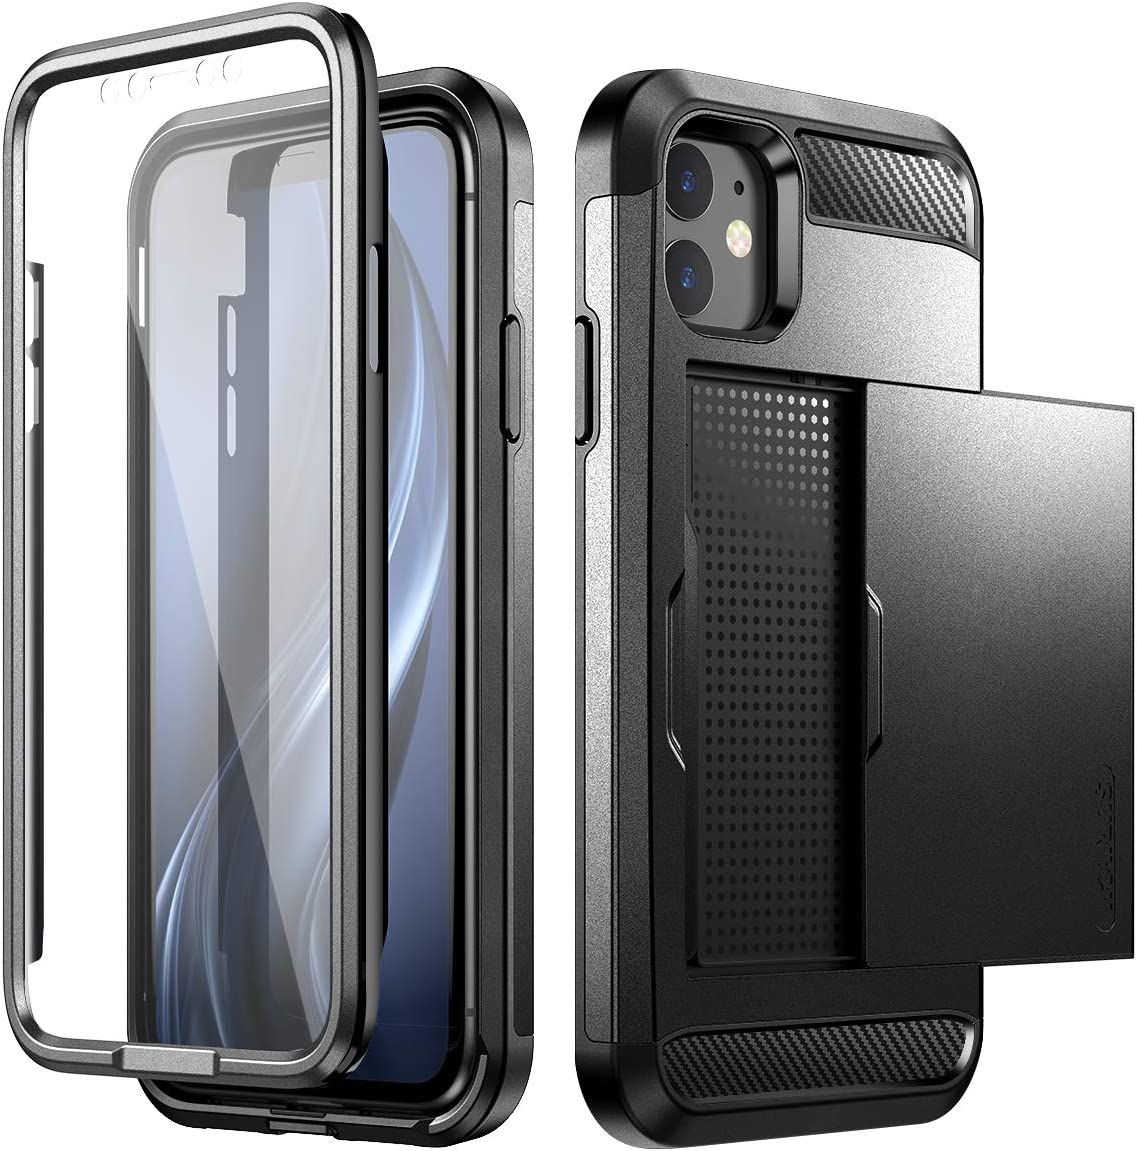 SURITCH iPhone 11 Wallet Case with Card Holder and Built-in Screen Protector Defender Shockproof Hybrid Dual Layer Hard PC + TPU Heavy Duty Protection Bumper Case for iPhone 11 6.1 inch Black